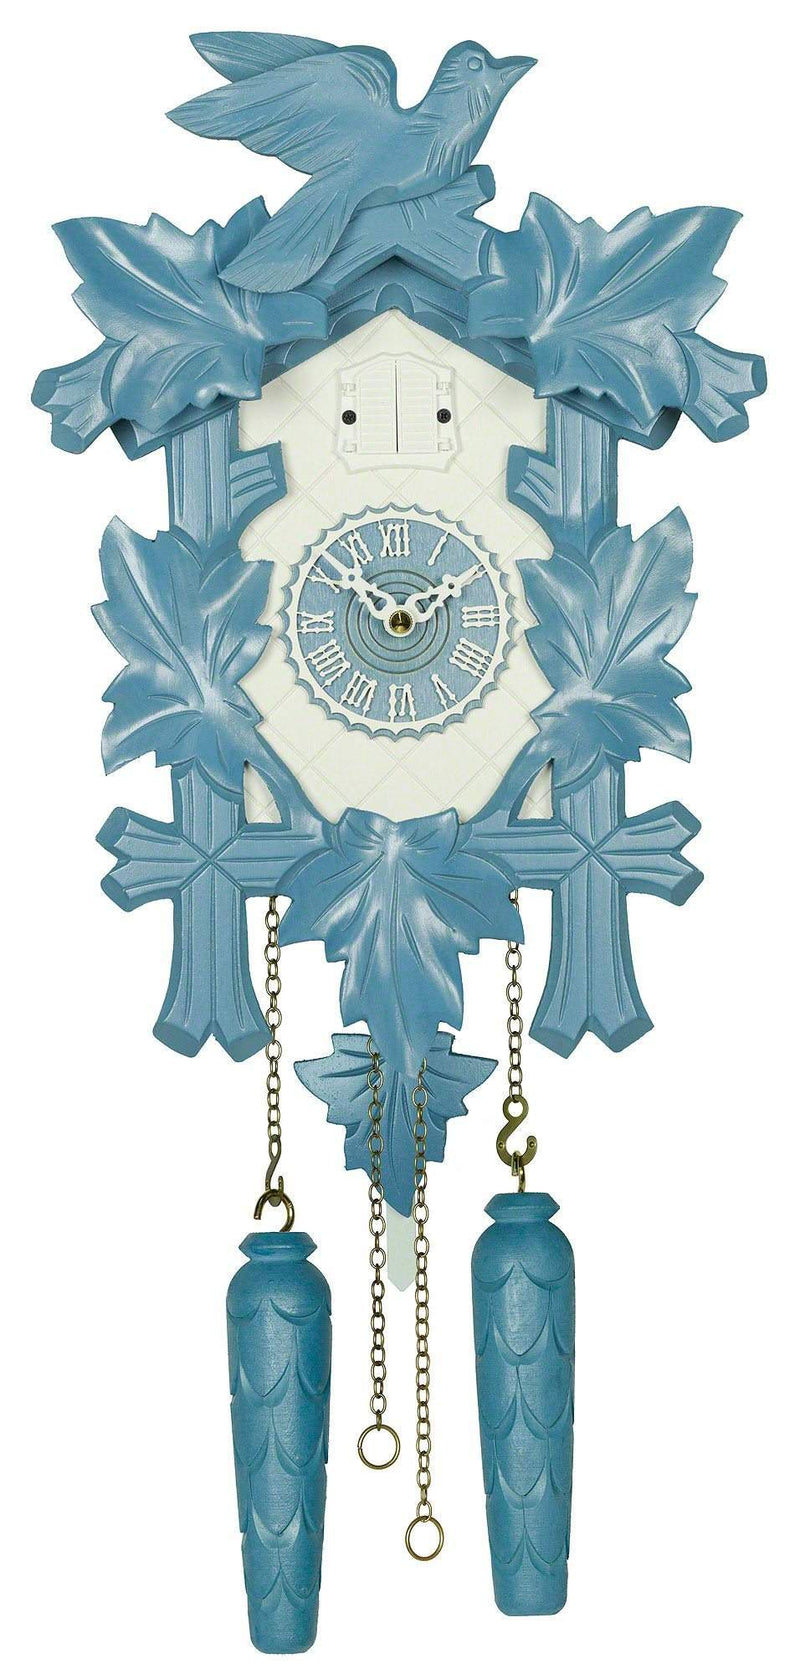 Traditional elements series of colored cuckoo clocks \u2013 Cuckoo Forest